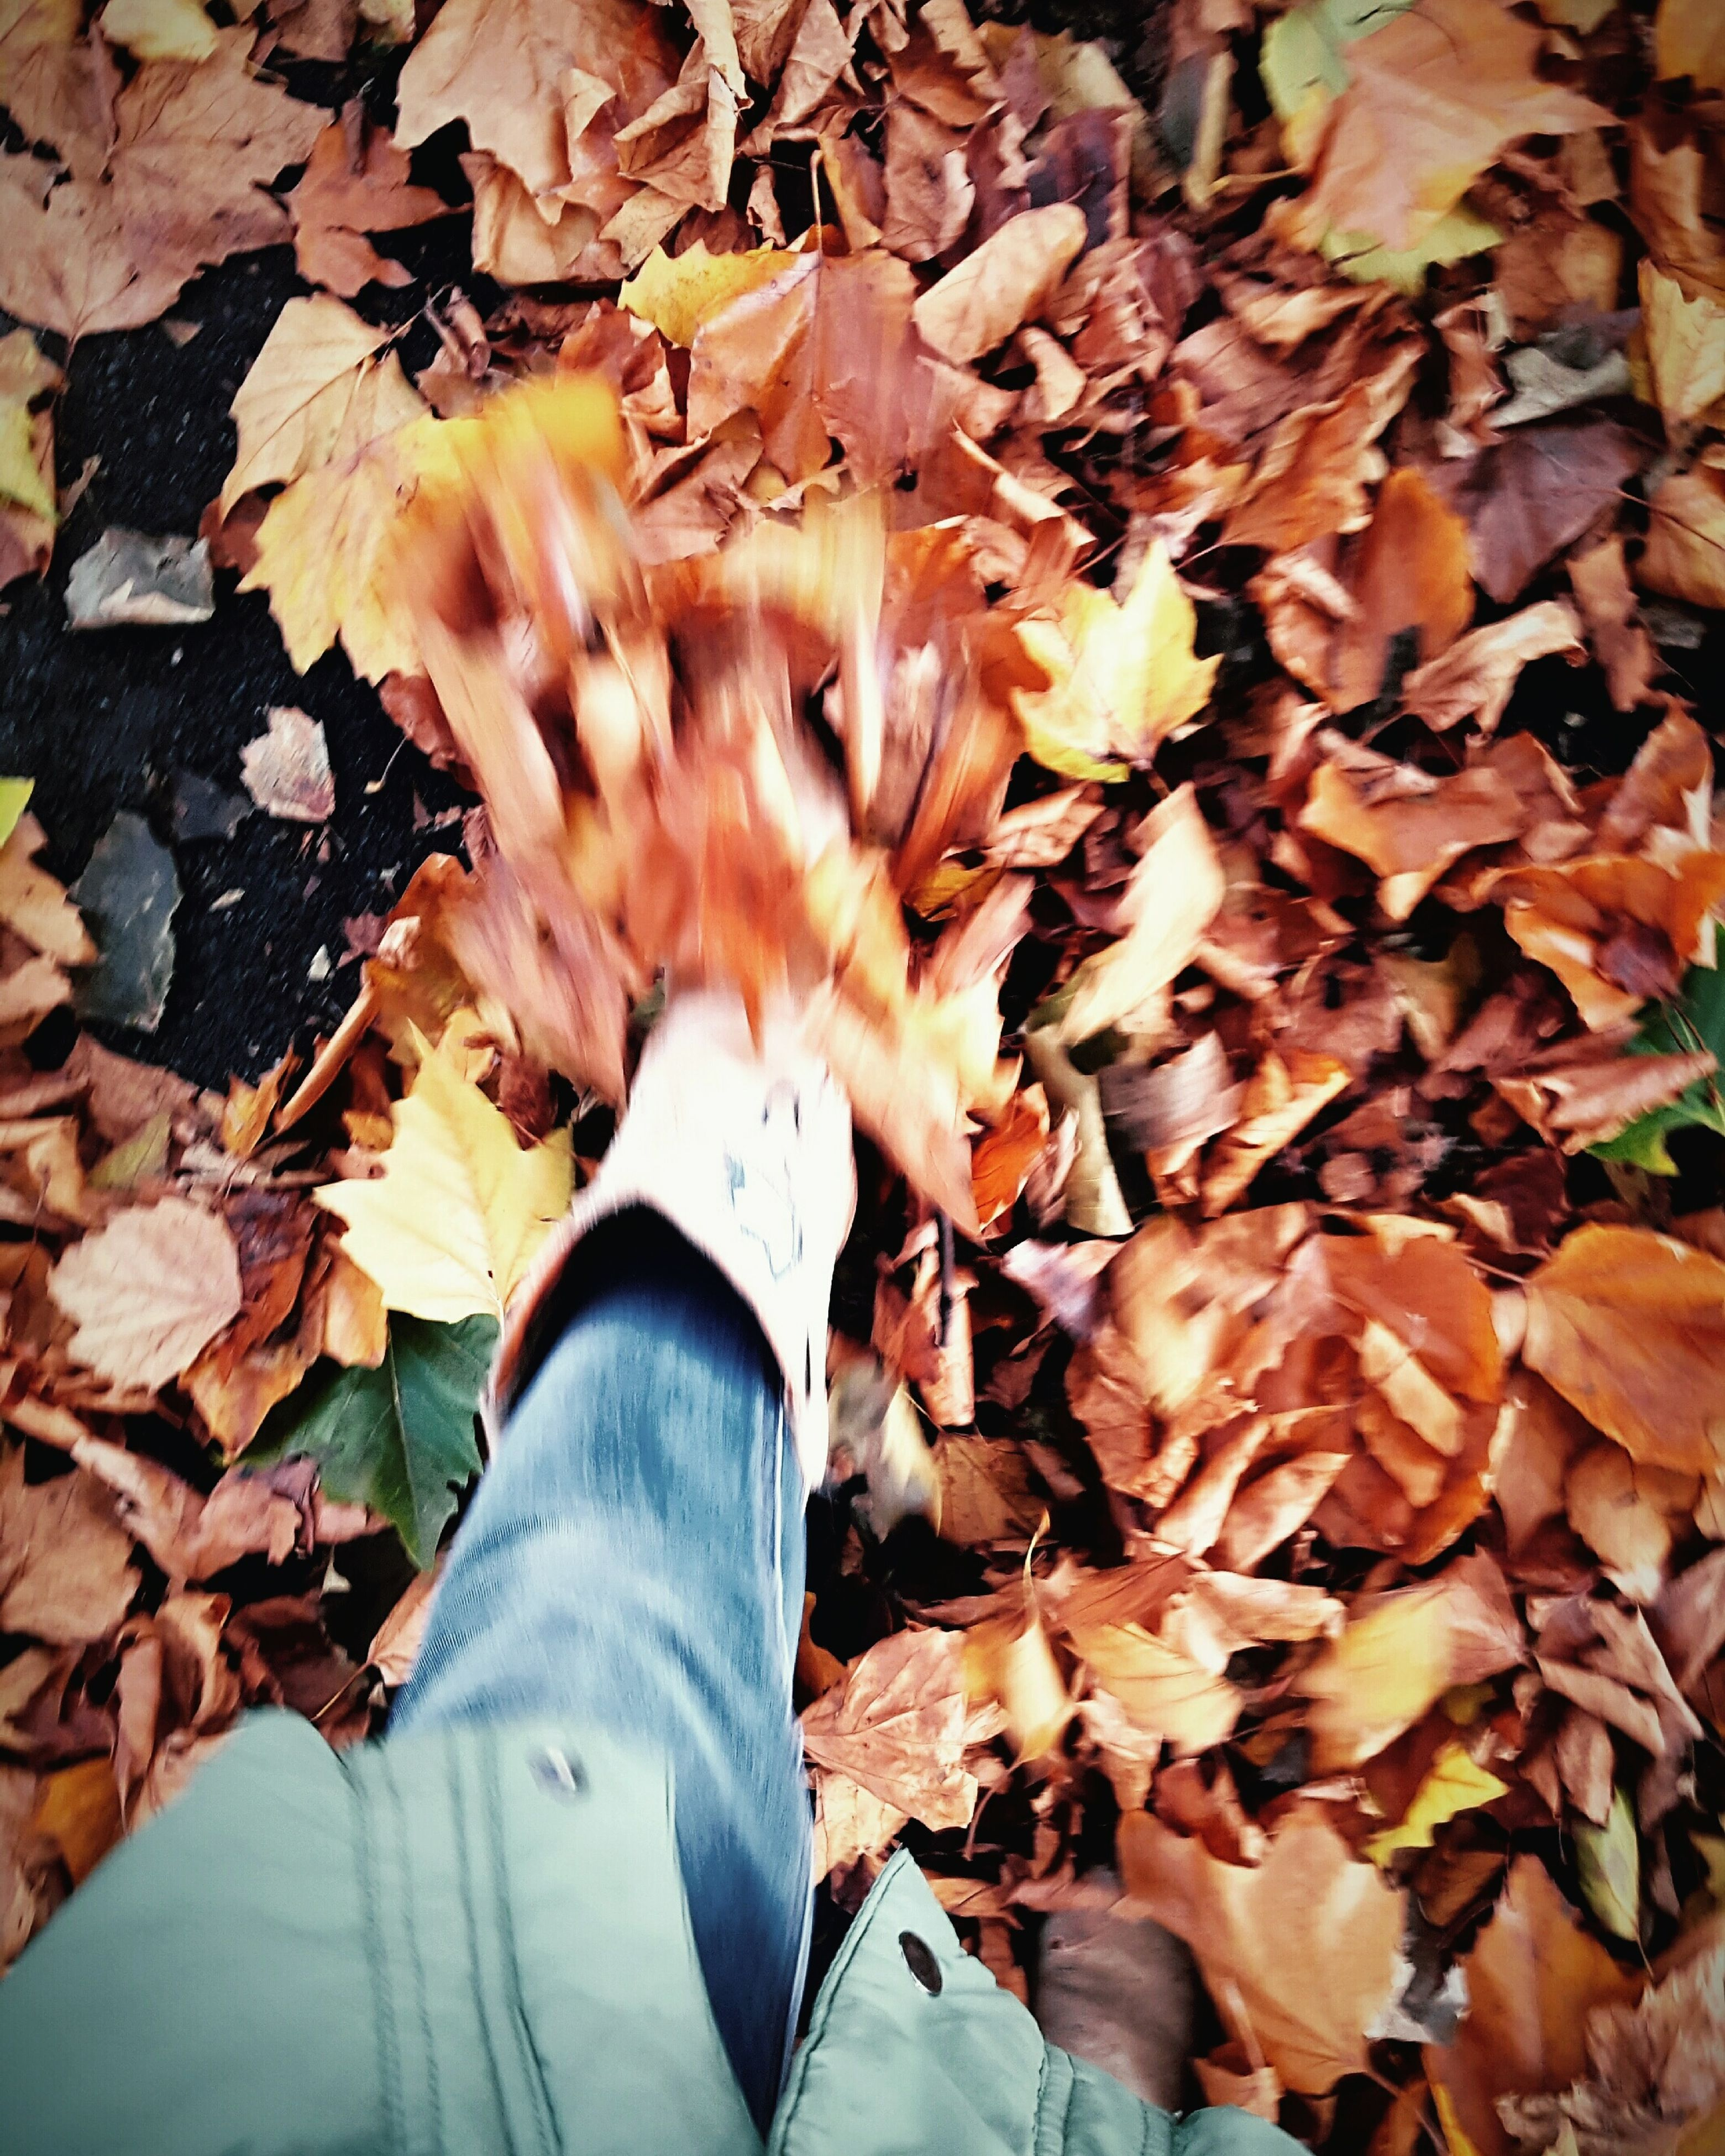 leaf, autumn, change, nature, real people, outdoors, personal perspective, human body part, human hand, close-up, one person, day, leaves, beauty in nature, human leg, maple leaf, maple